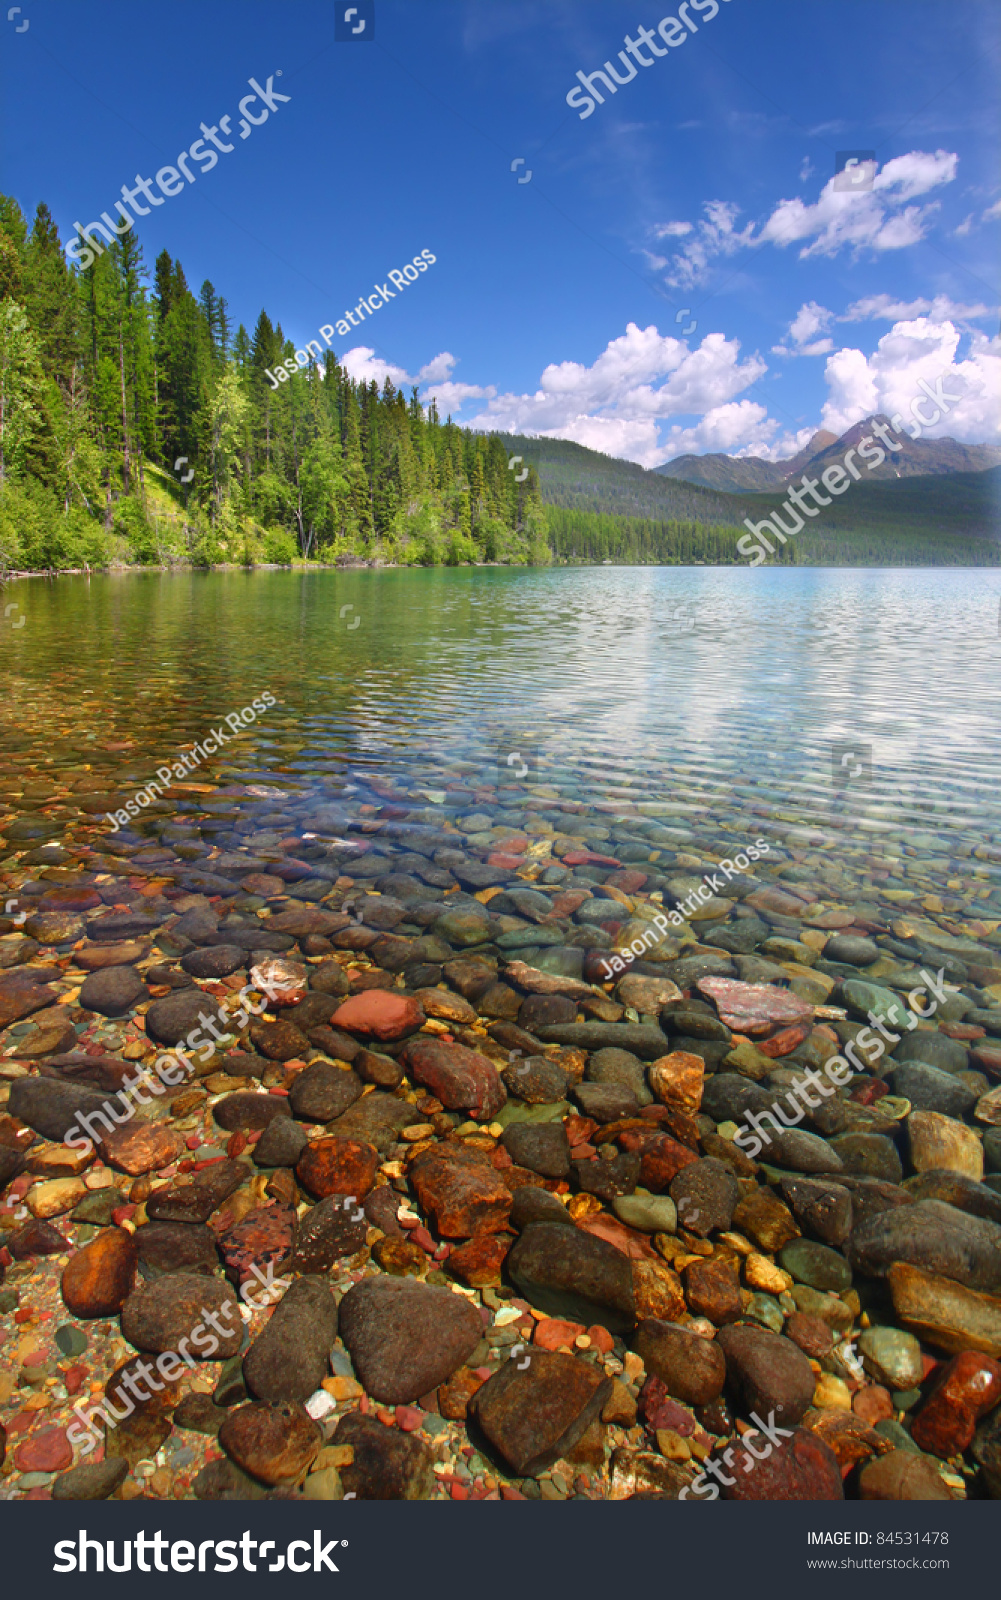 Pretty Rocks Seen Through The Crystal Clear Waters Of